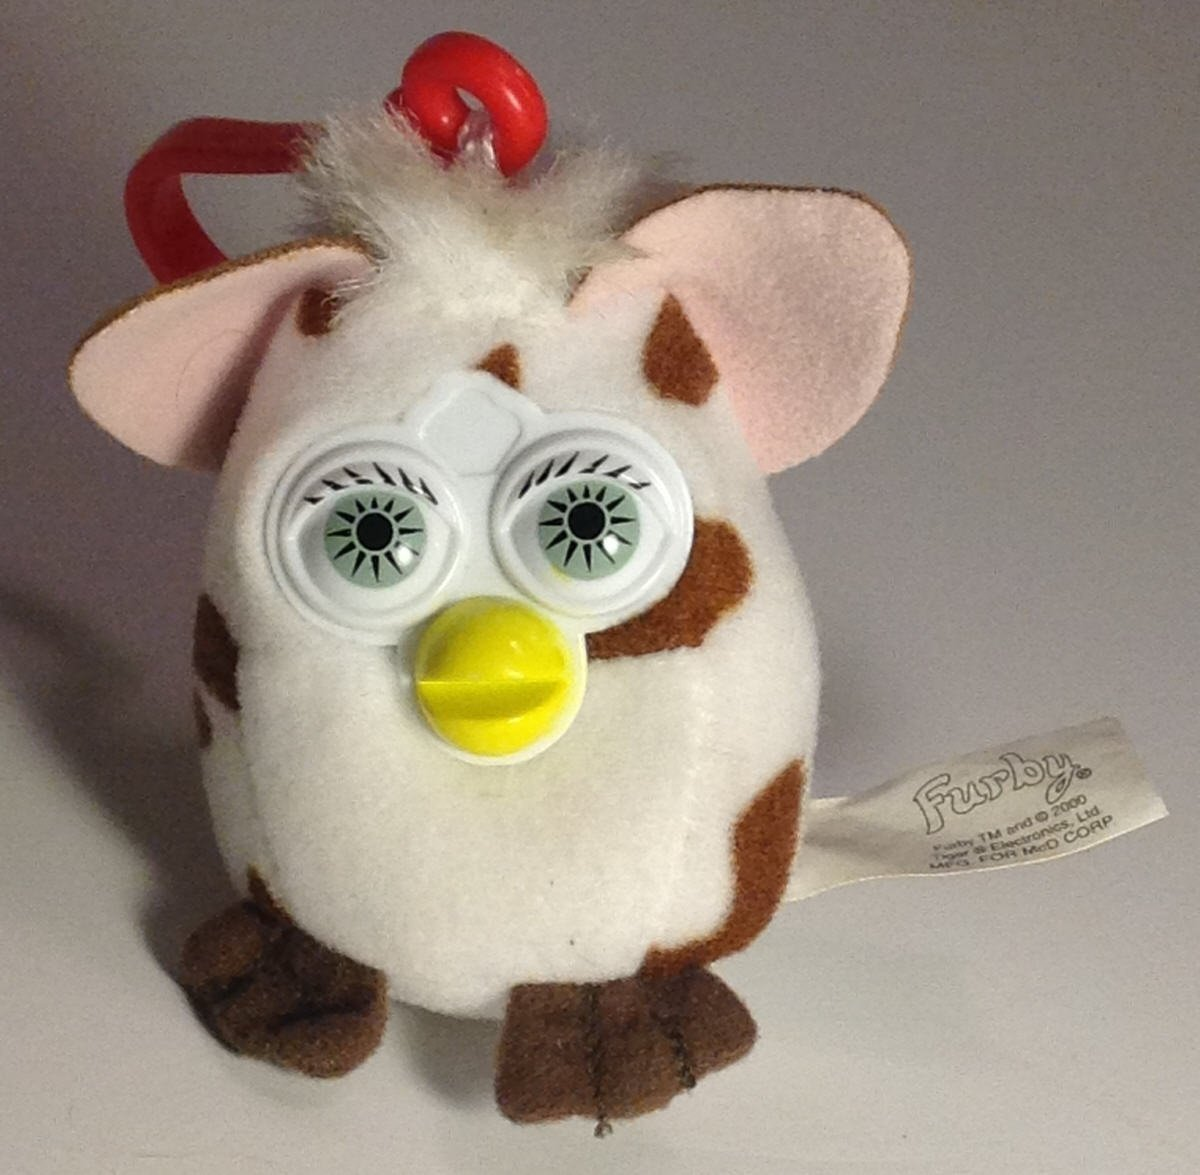 McDonald's Happy Meal Toy Furby Cow 8, By McDonalds Corp Ship from US by